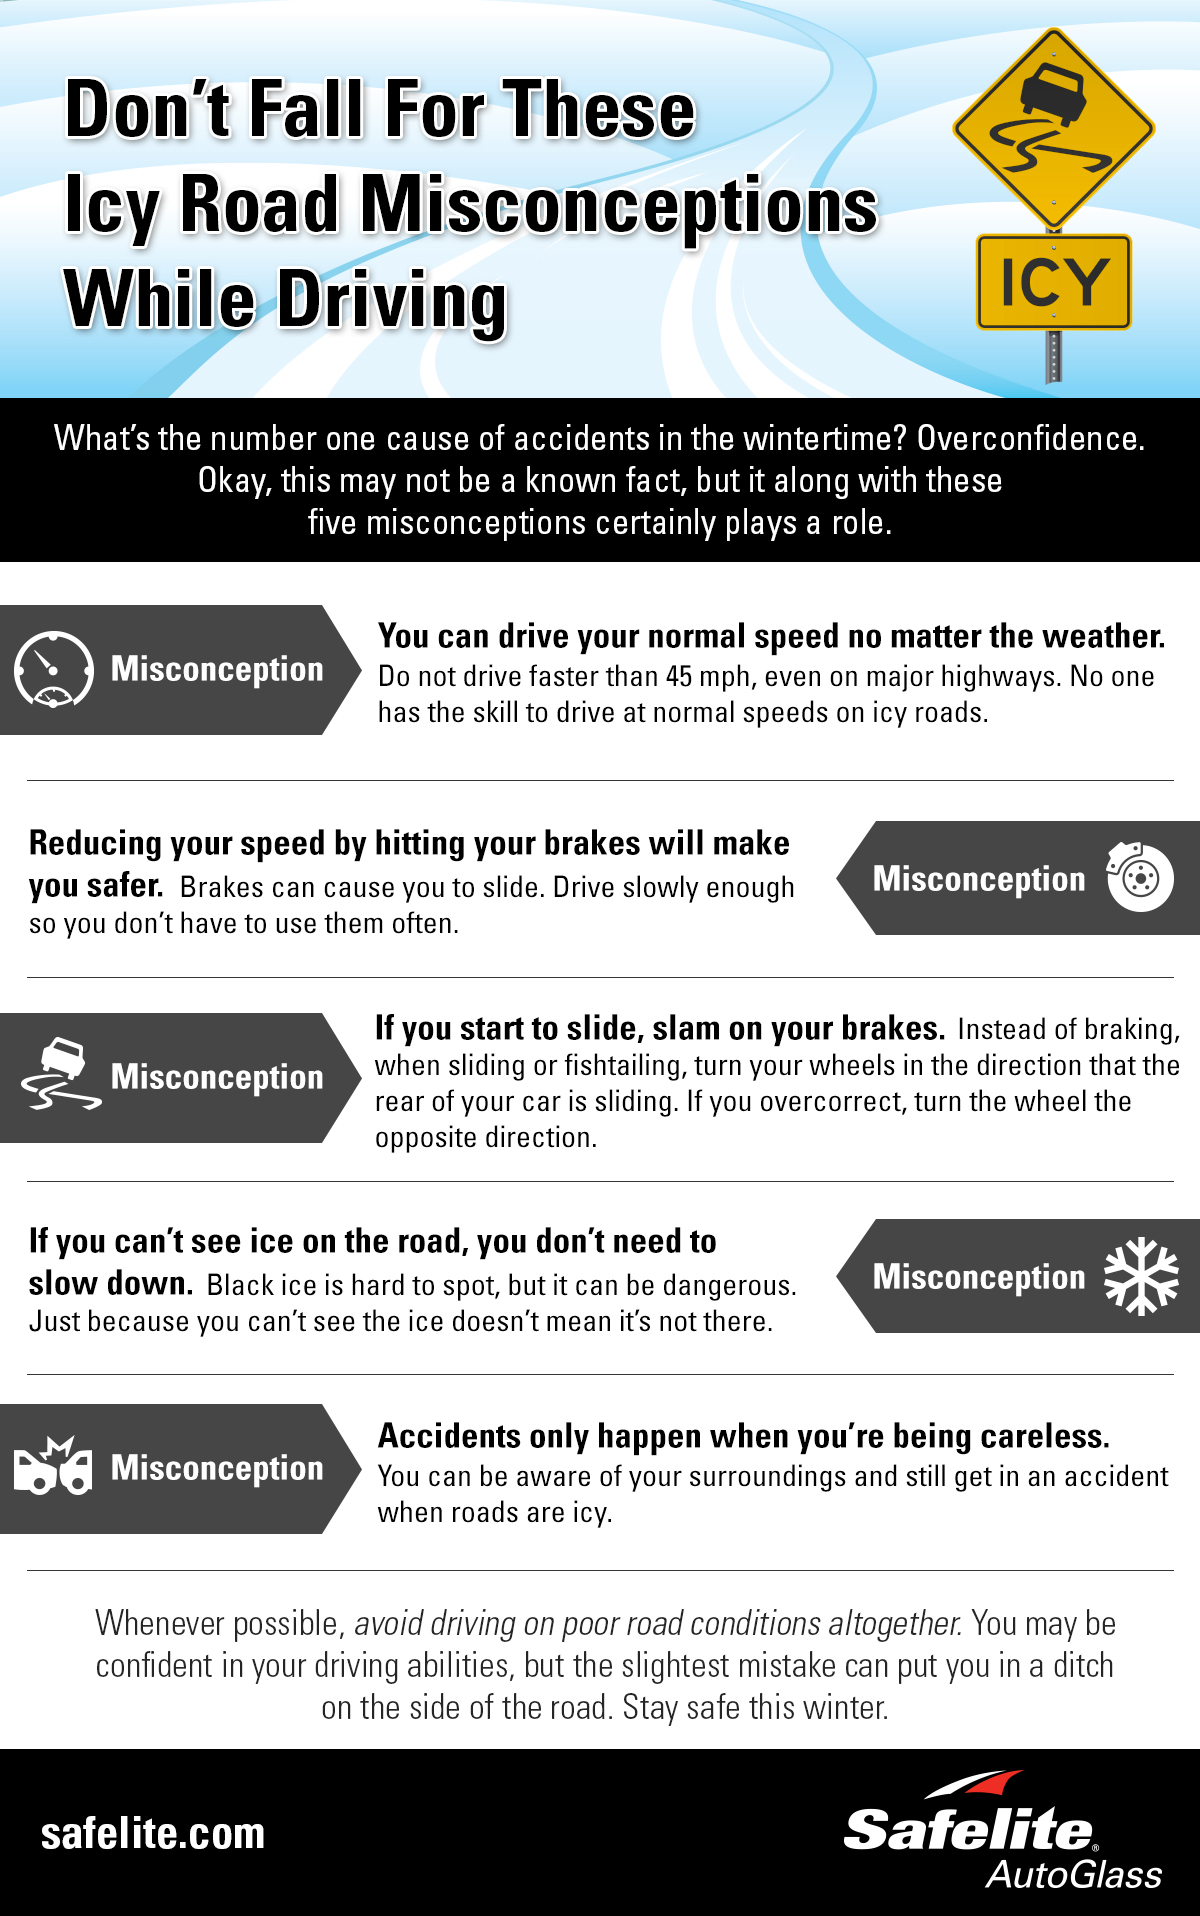 Safelite shares common misconceptions and dangers of driving on icy roads.